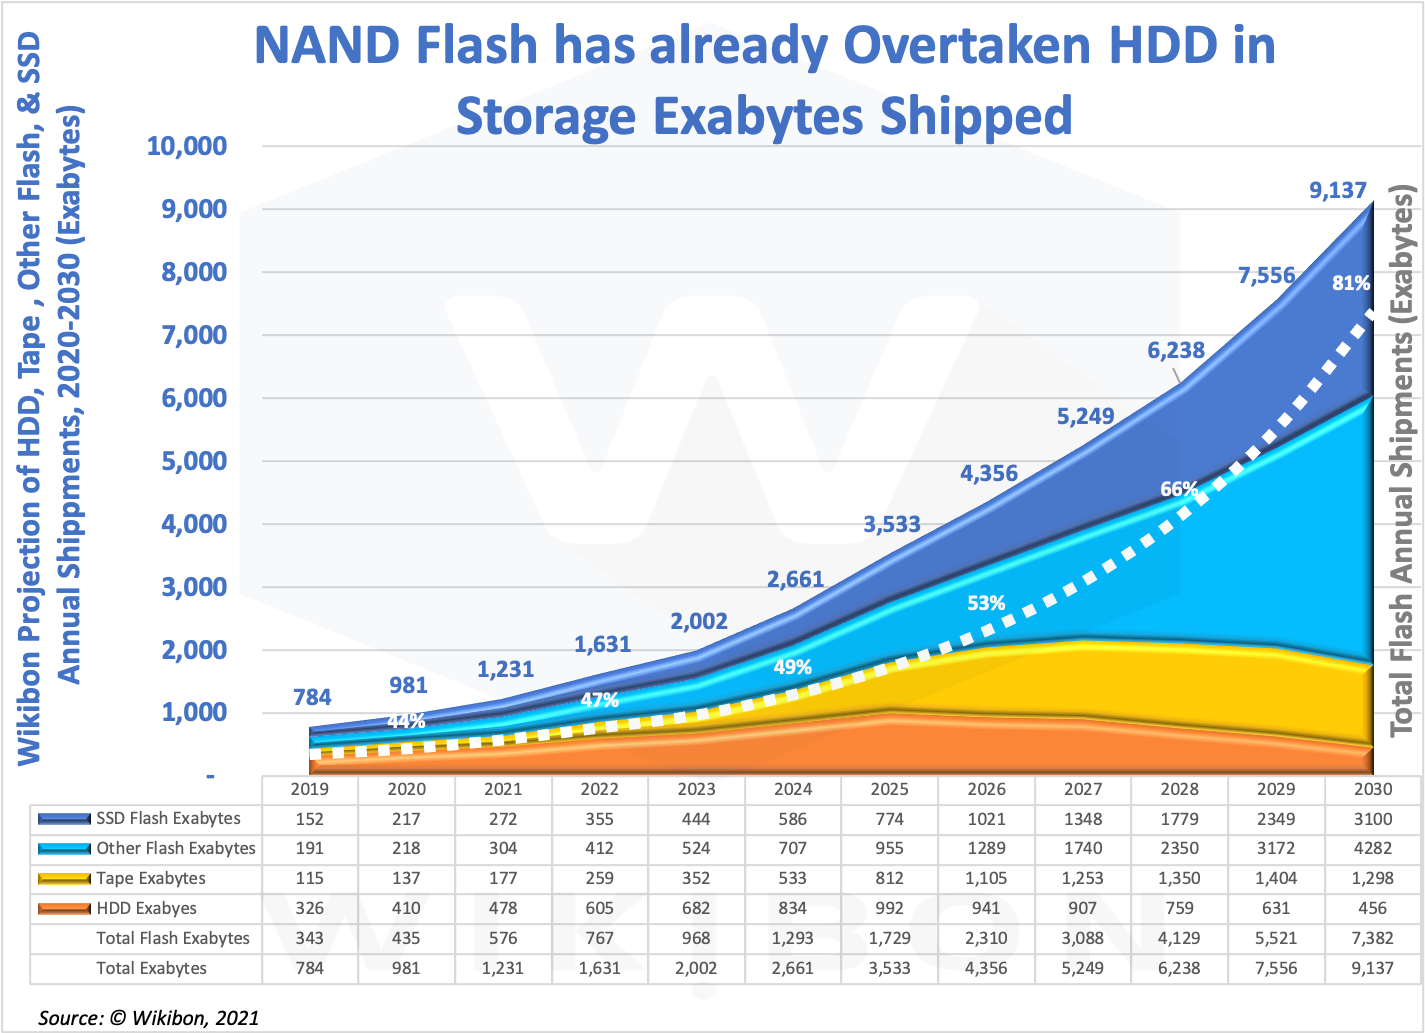 HDD, Tape, & Flash Exabytes Shipped 2019-2030